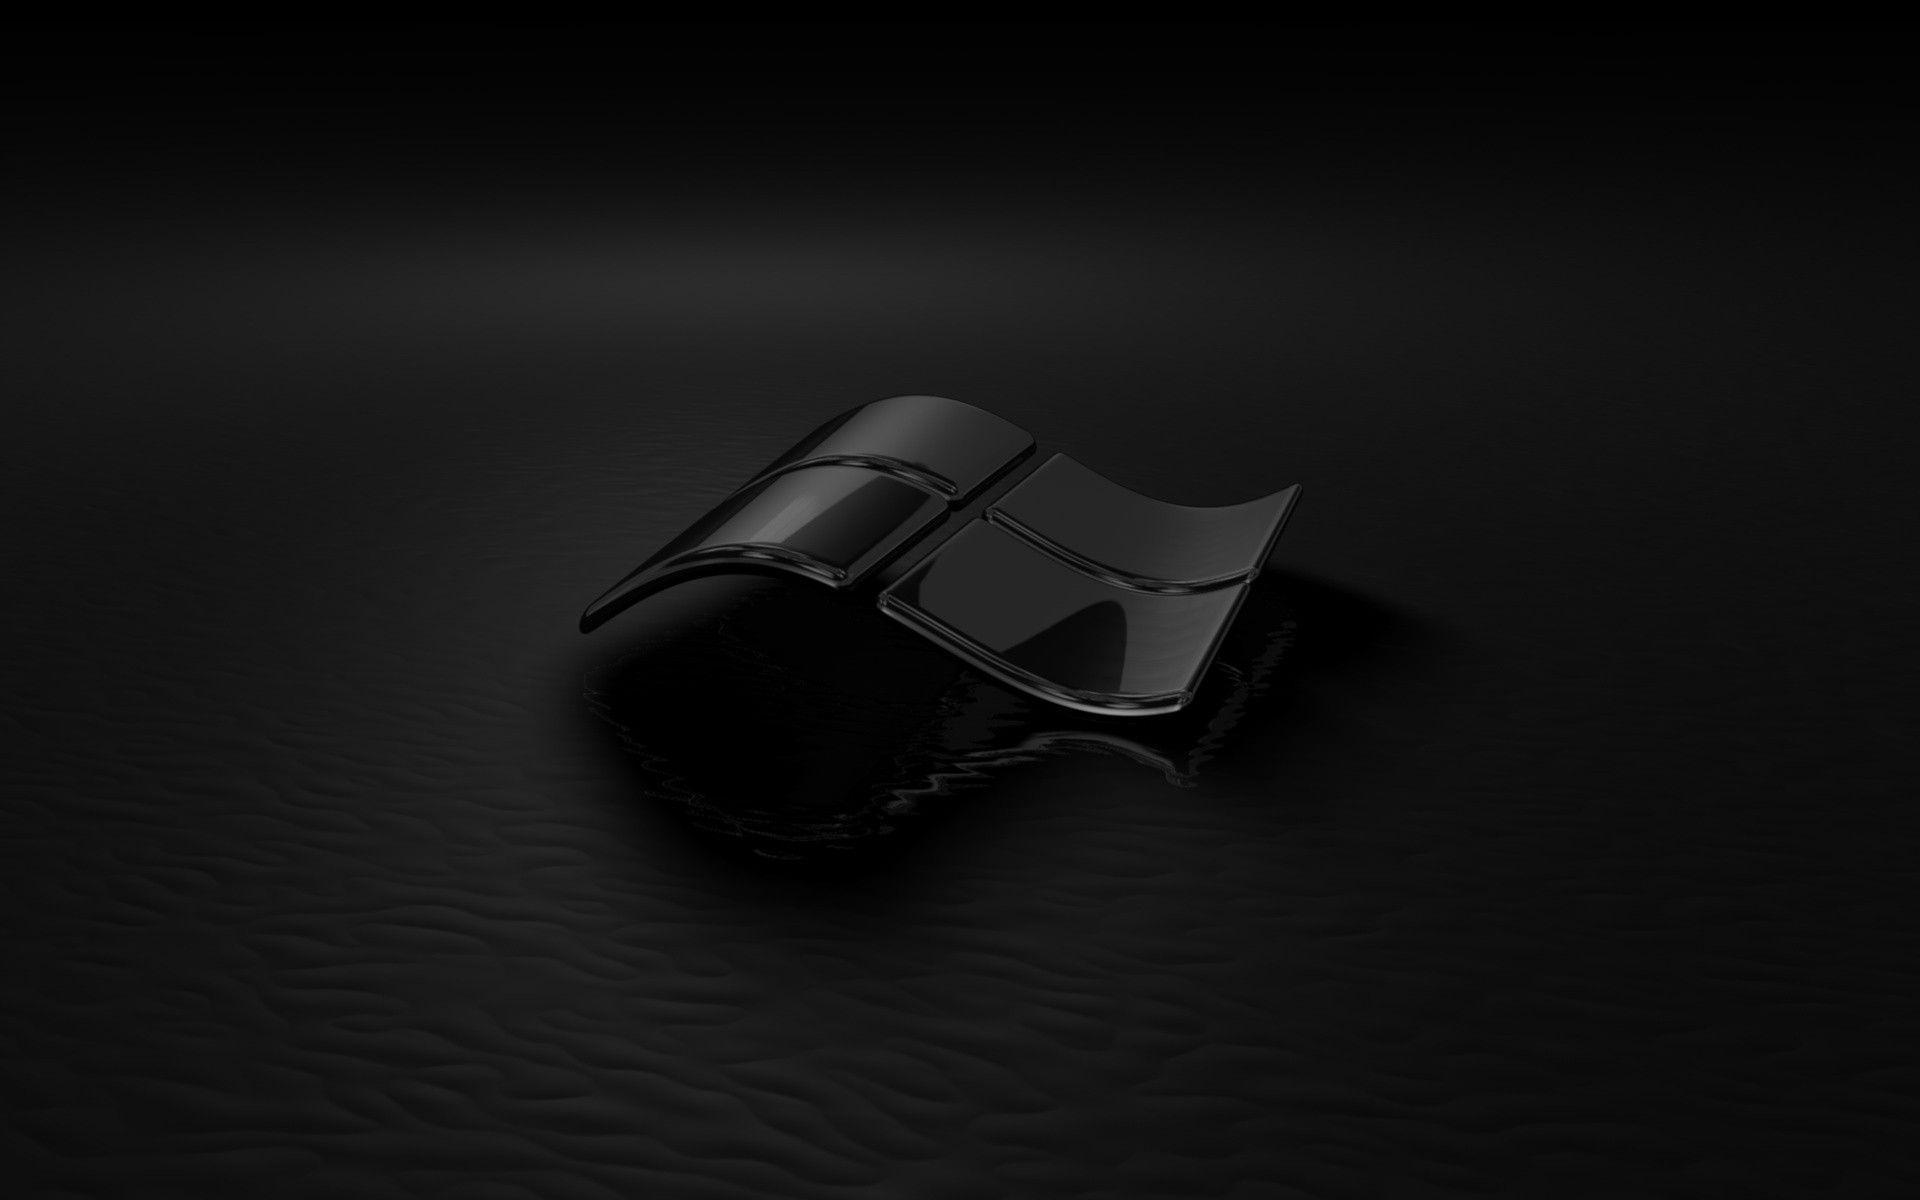 glossy black wallpapers - photo #32